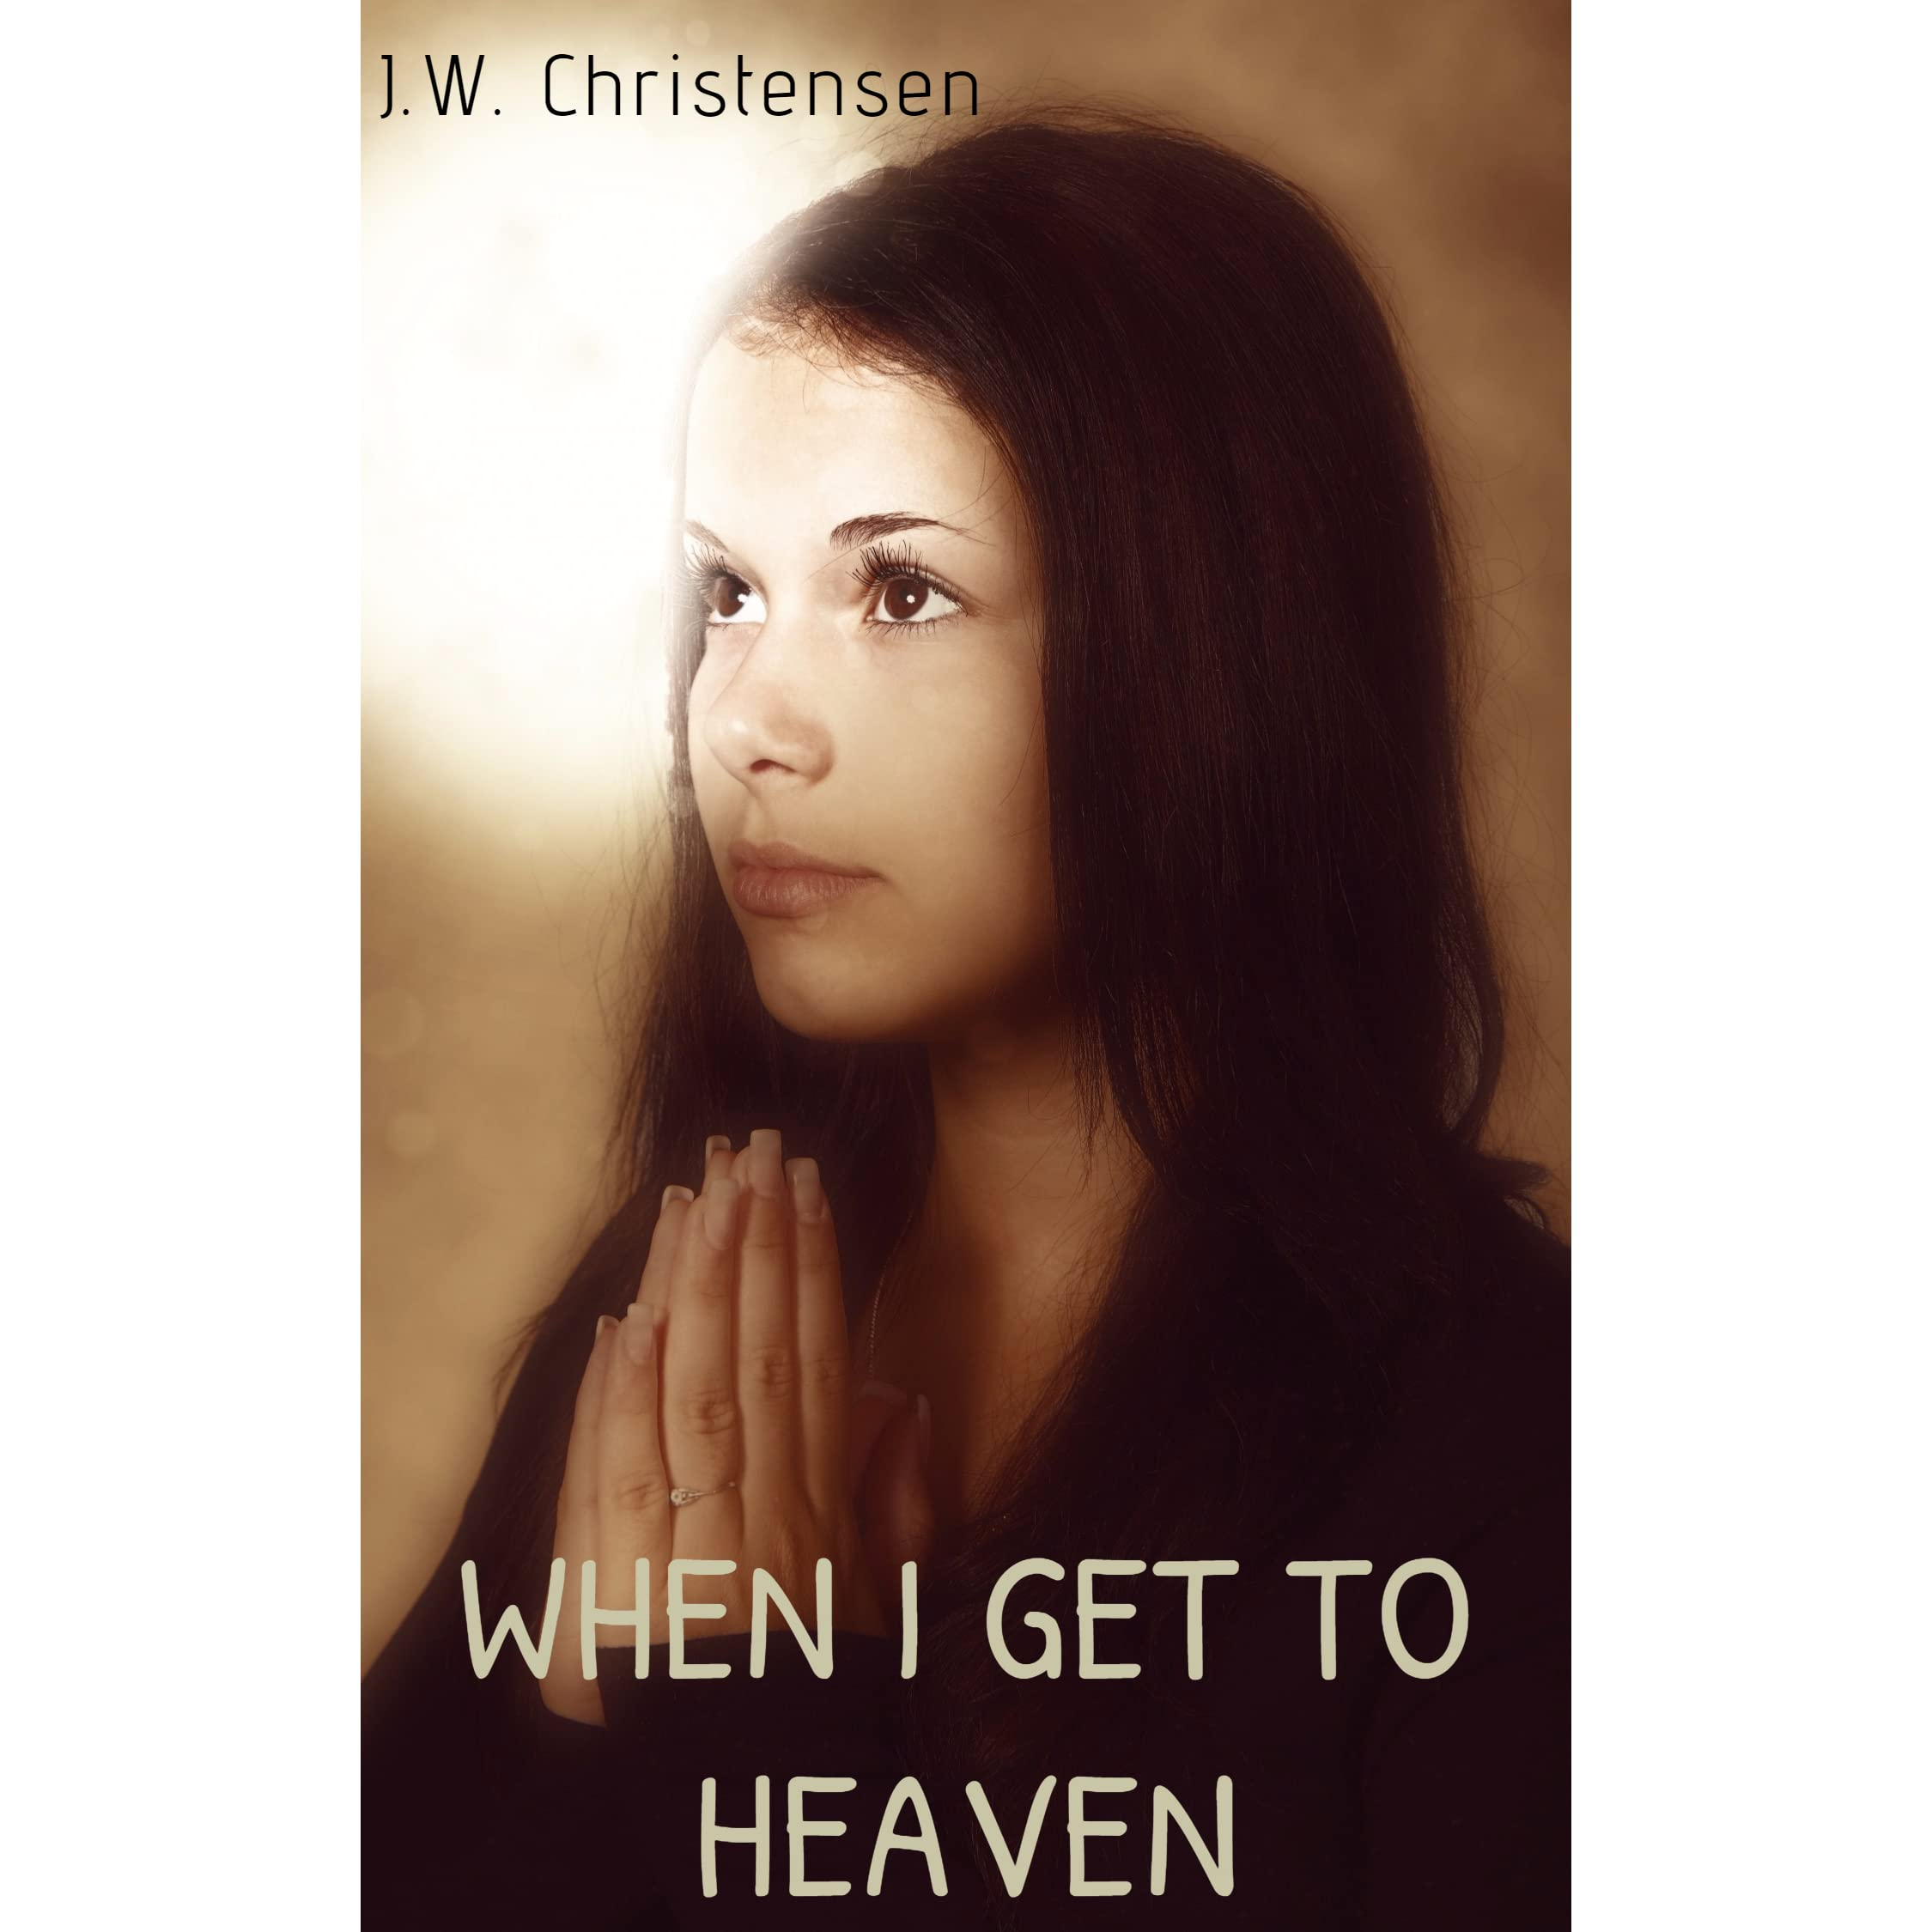 Image result for when i get to heaven jw christensen